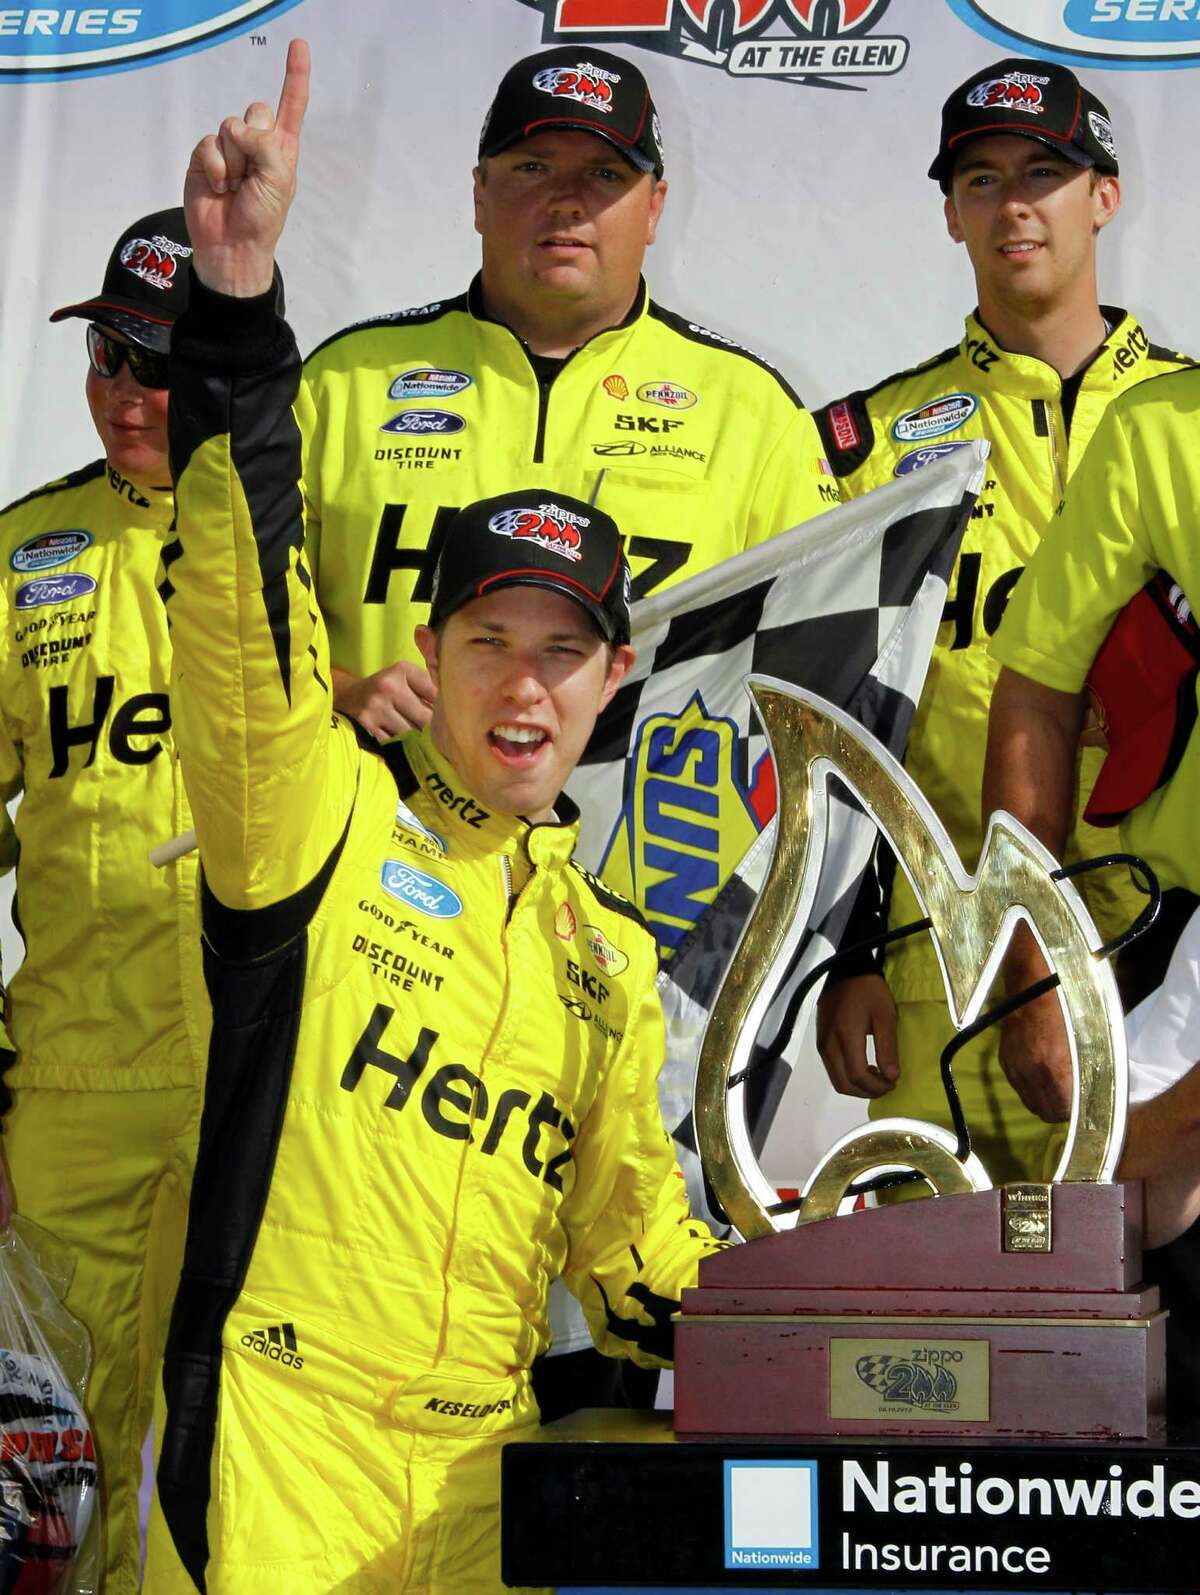 Brad Keselowski celebrates in Victory Lane after winning the NASCAR Nationwide Series auto race, Saturday, Aug. 10, 2013, in Watkins Glen, N.Y. (AP Photo/Russ Hamilton Sr.) ORG XMIT: NYME115